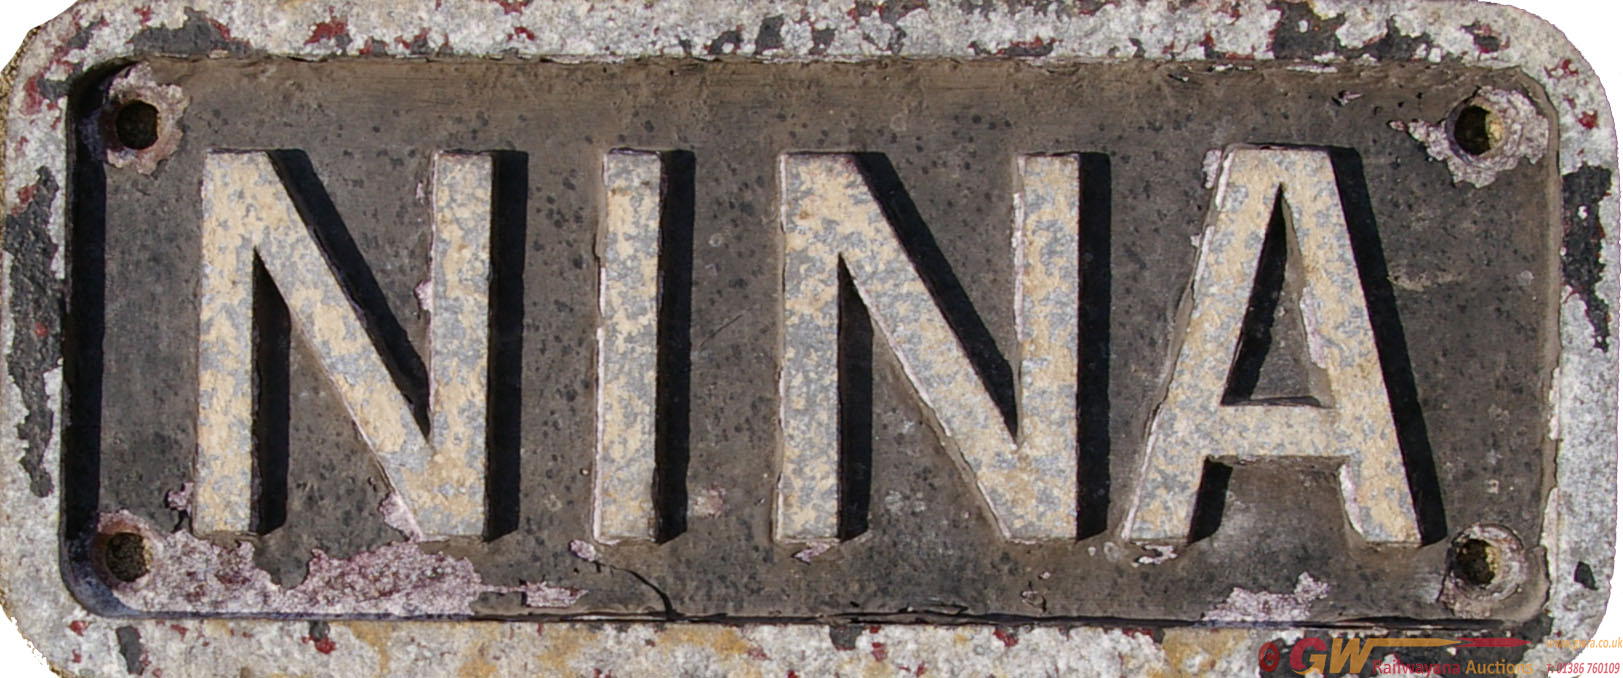 Nameplate NINA, Alloy Construction Measuring Just